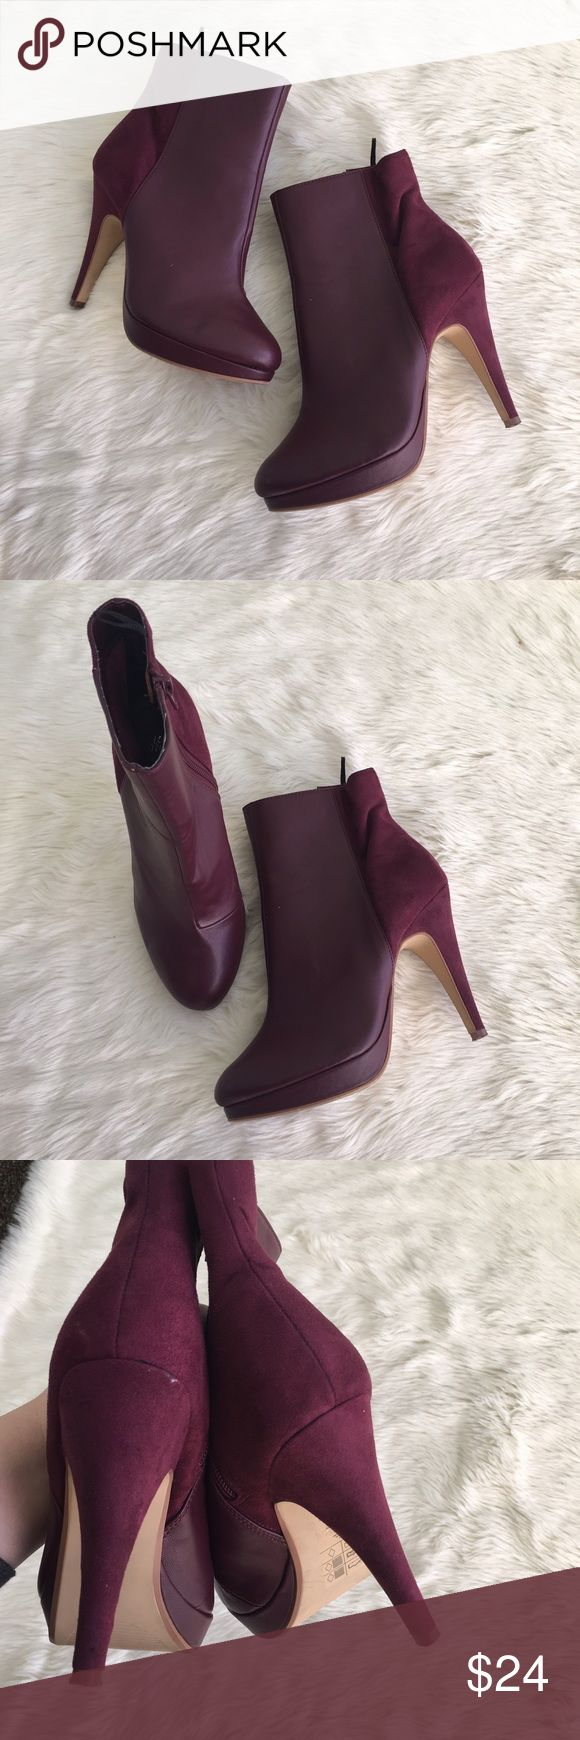 H&m velvet vegan rather heel booties Sz 37 H&m booties. Excellent like new condition aside from marks from storage as photographed. H&M Shoes Ankle Boots & Booties